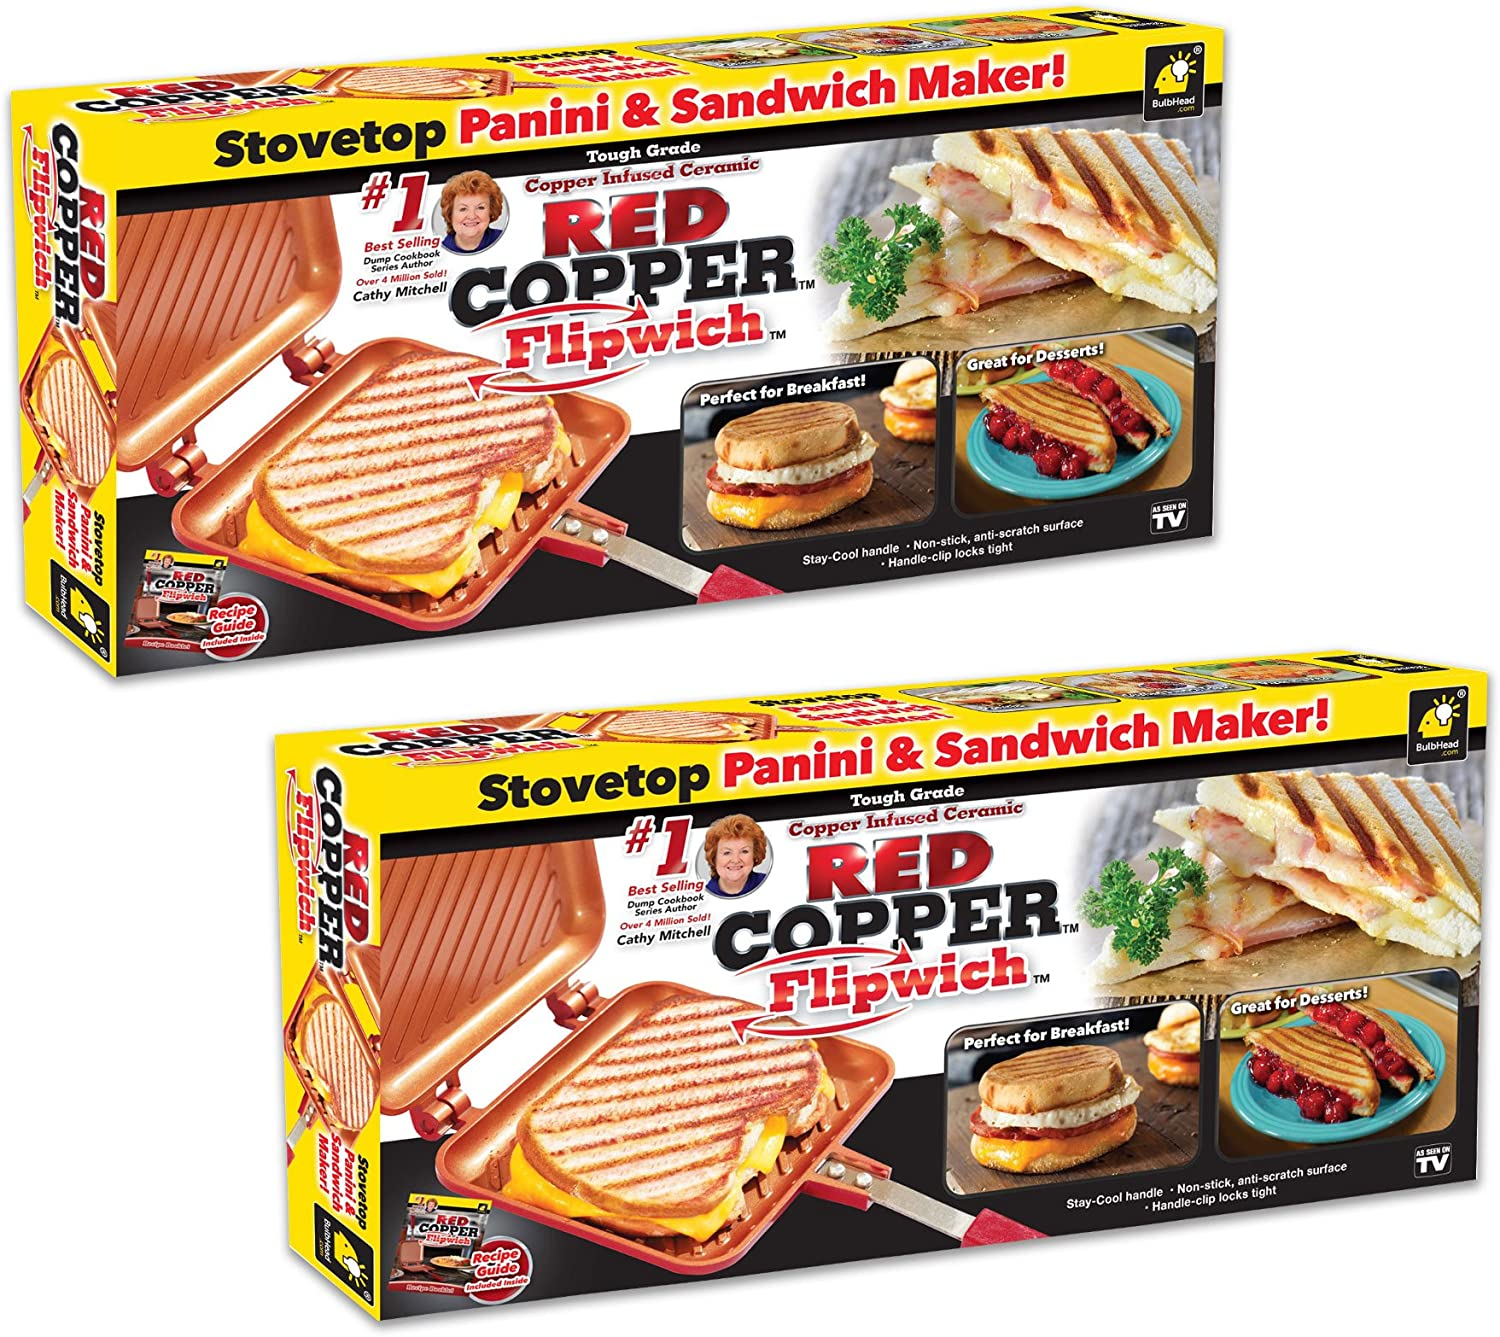 Red Copper Flipwich Non-Stick Grilled Sandwich and Panini Maker by BulbHead 2 Pack